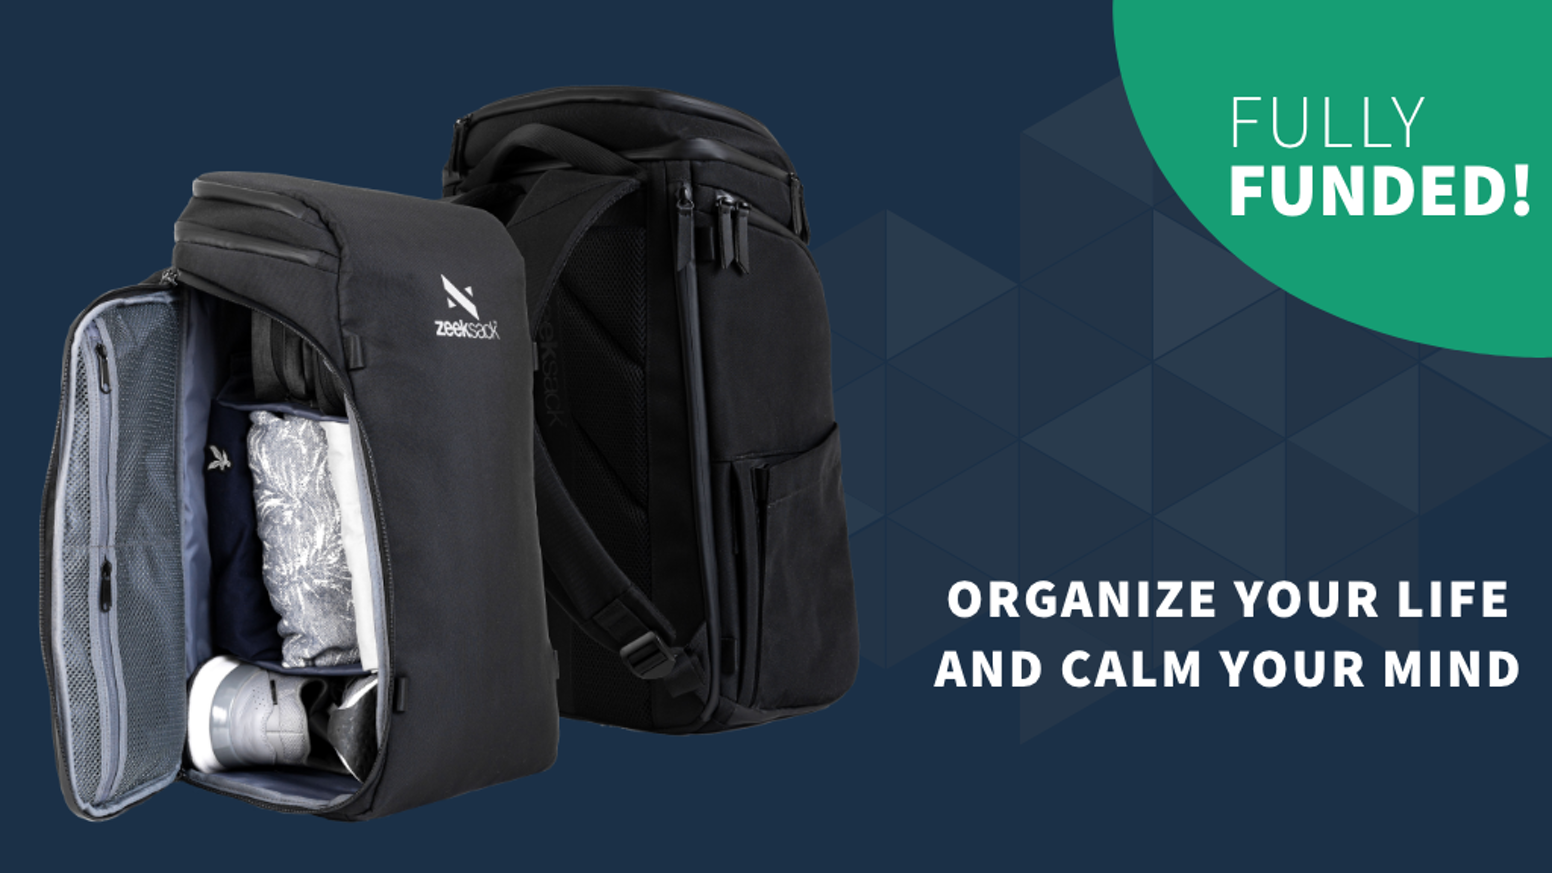 Organize your life and calm your mind with this backpack's Modular Divider System™ and instant access side opening